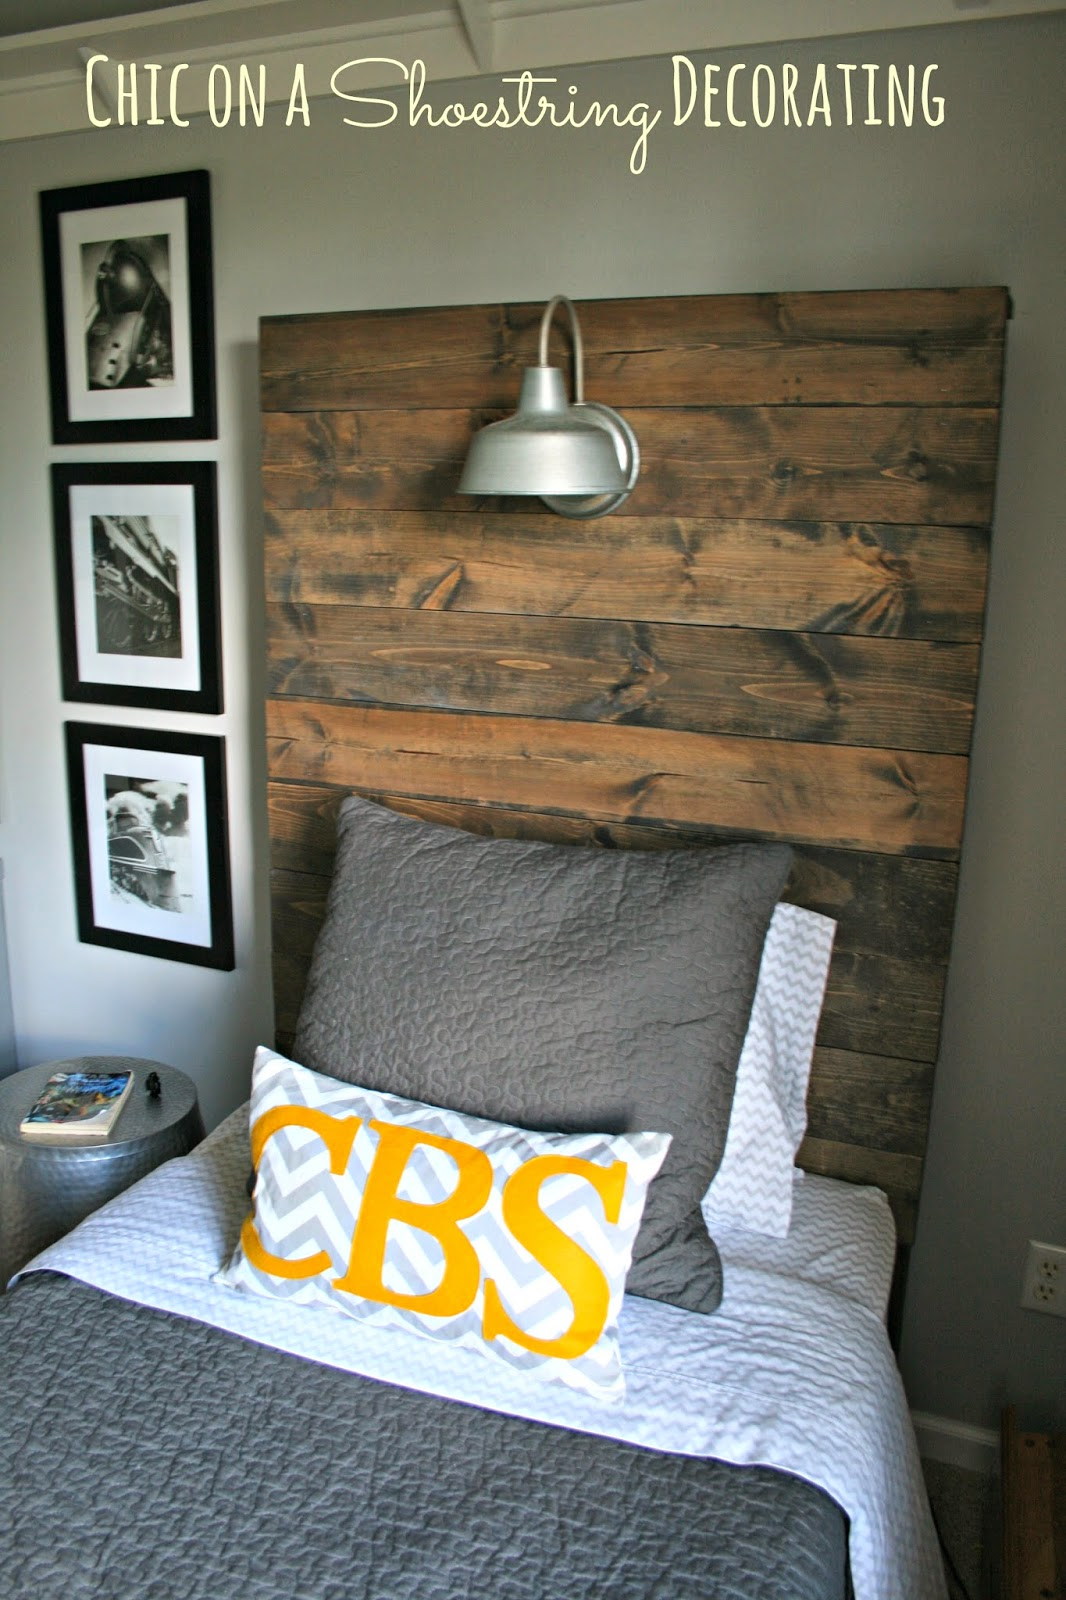 How to Build a Rustic, Wooden Headboard with an attached light fixture. Headboard Tutorial by Chic on a Shoestring Decorating.